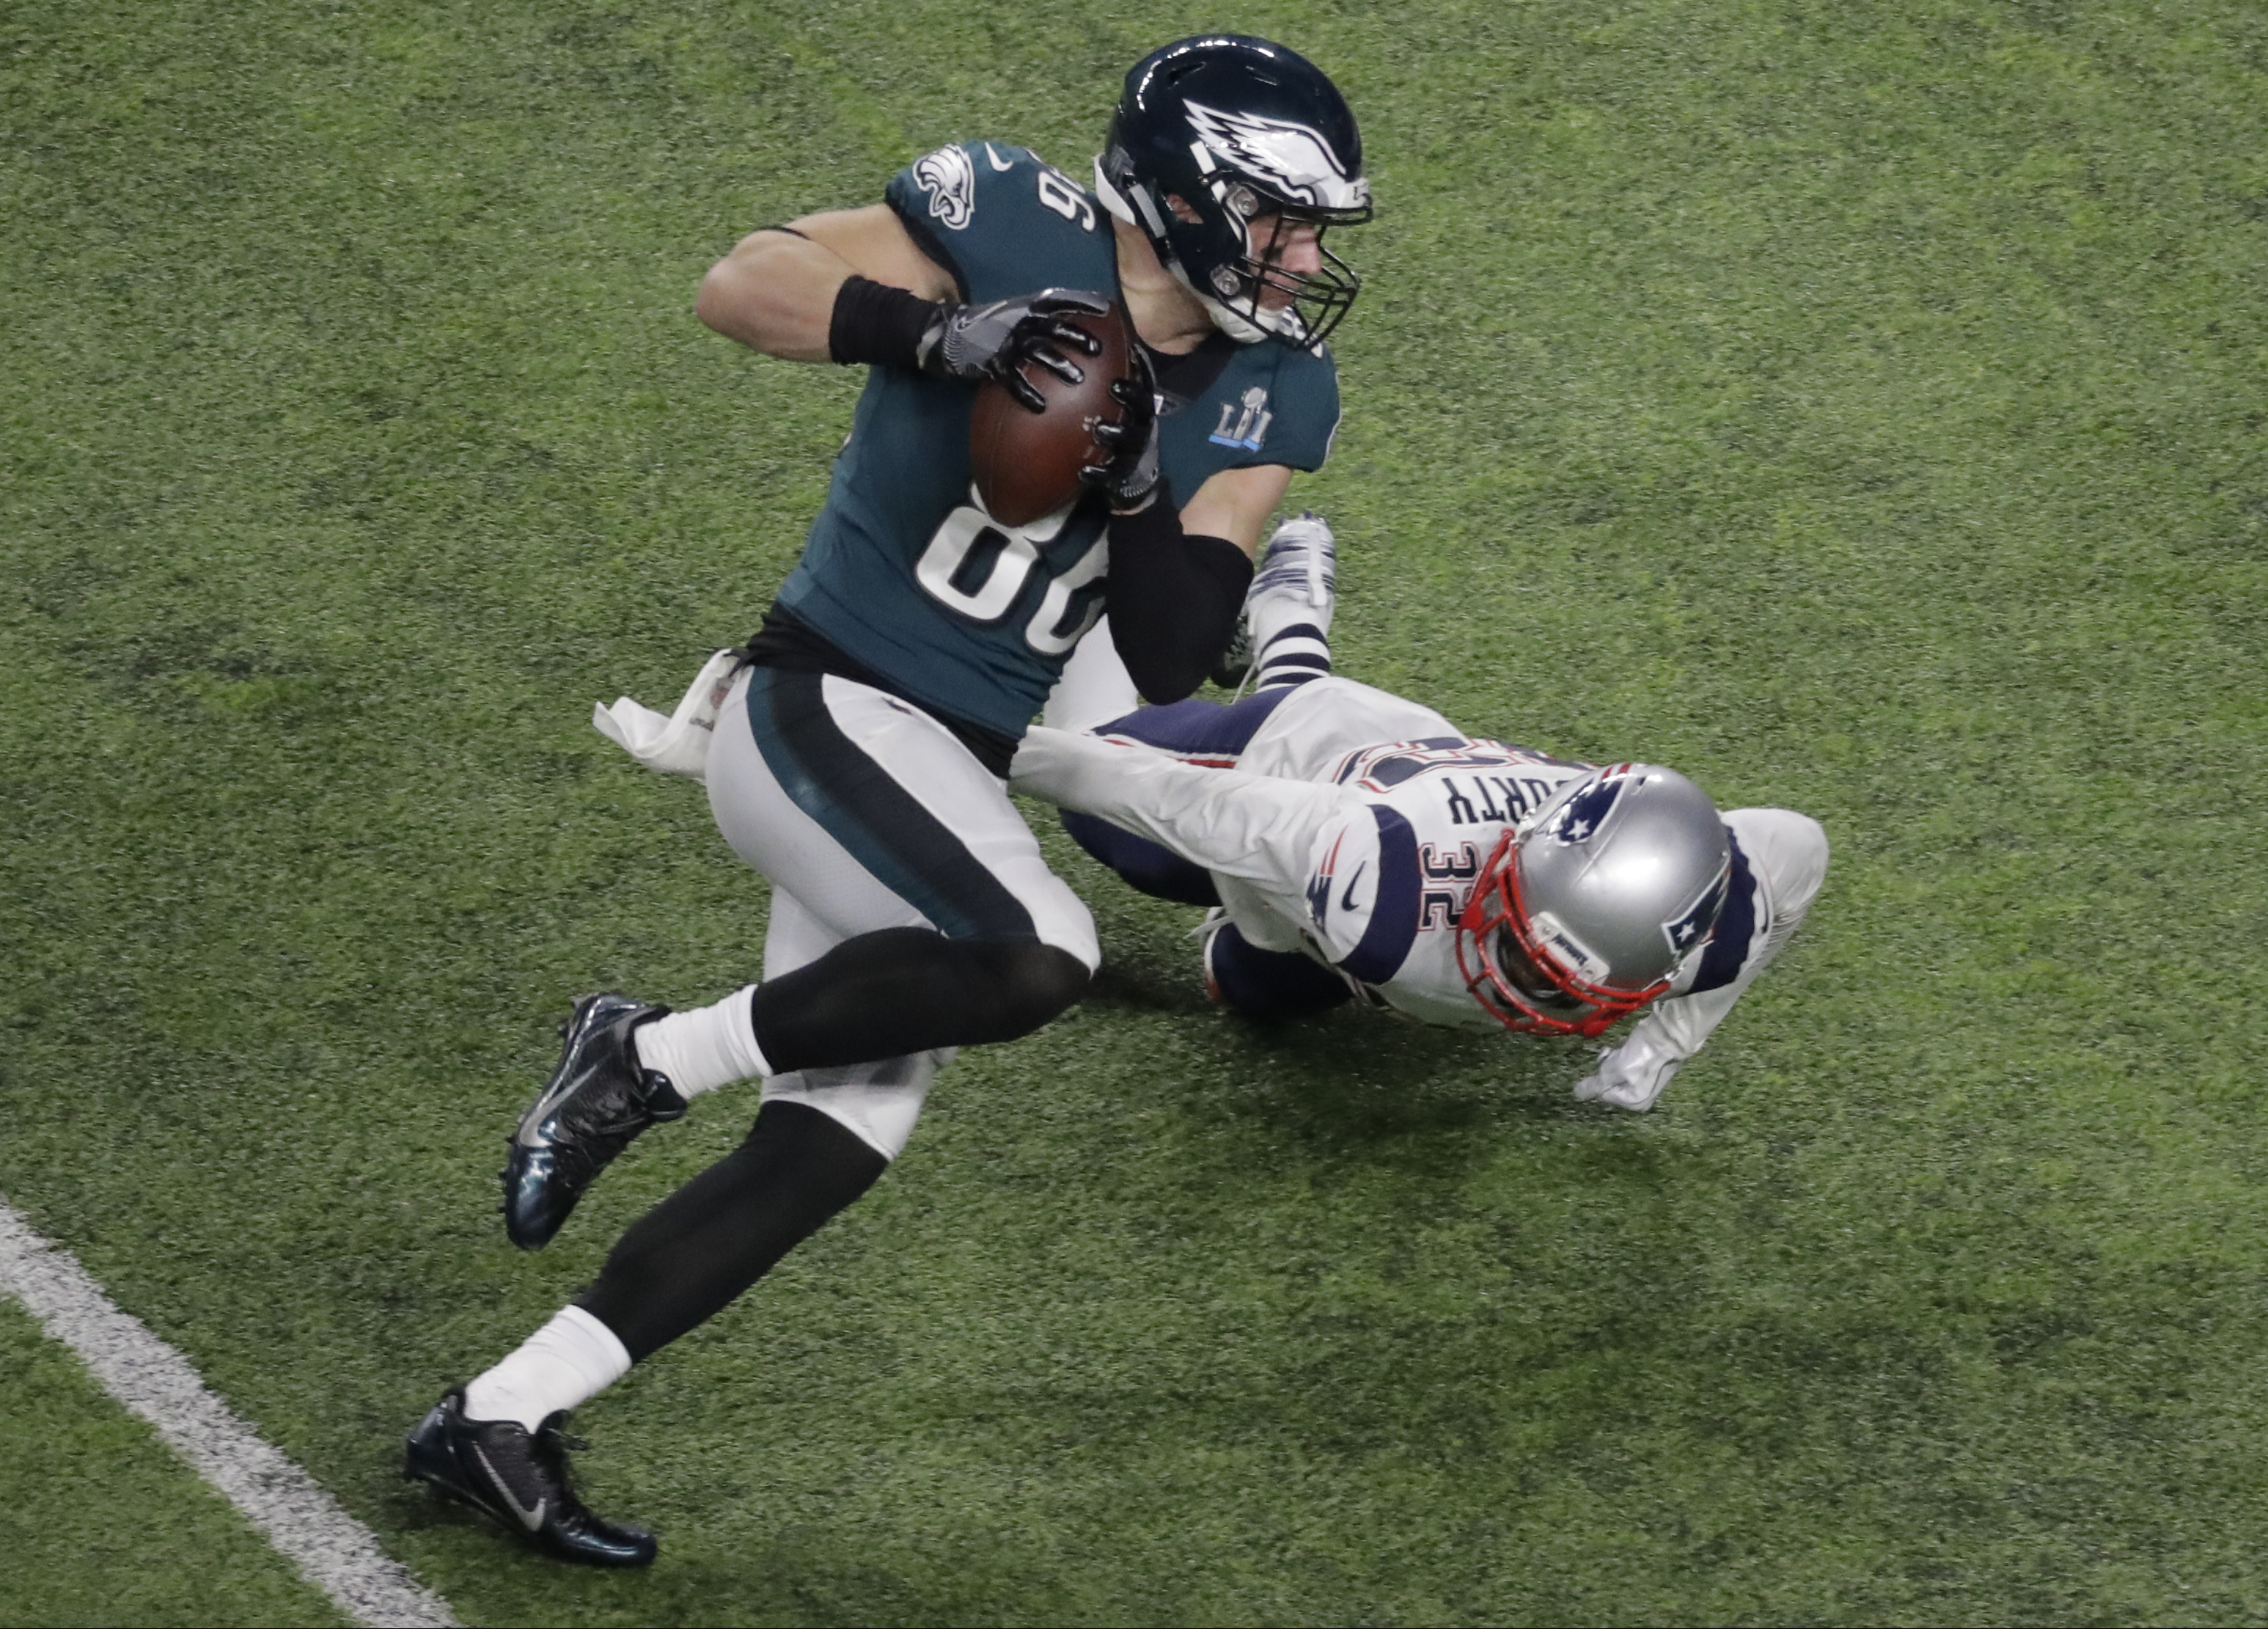 "<div class=""meta image-caption""><div class=""origin-logo origin-image ap""><span>AP</span></div><span class=""caption-text"">Philadelphia Eagles tight end Zach Ertz scores past New England Patriots free safety Devin McCourty during the second half of the NFL Super Bowl 52 football game. (AP Photo/Eric Gay)</span></div>"